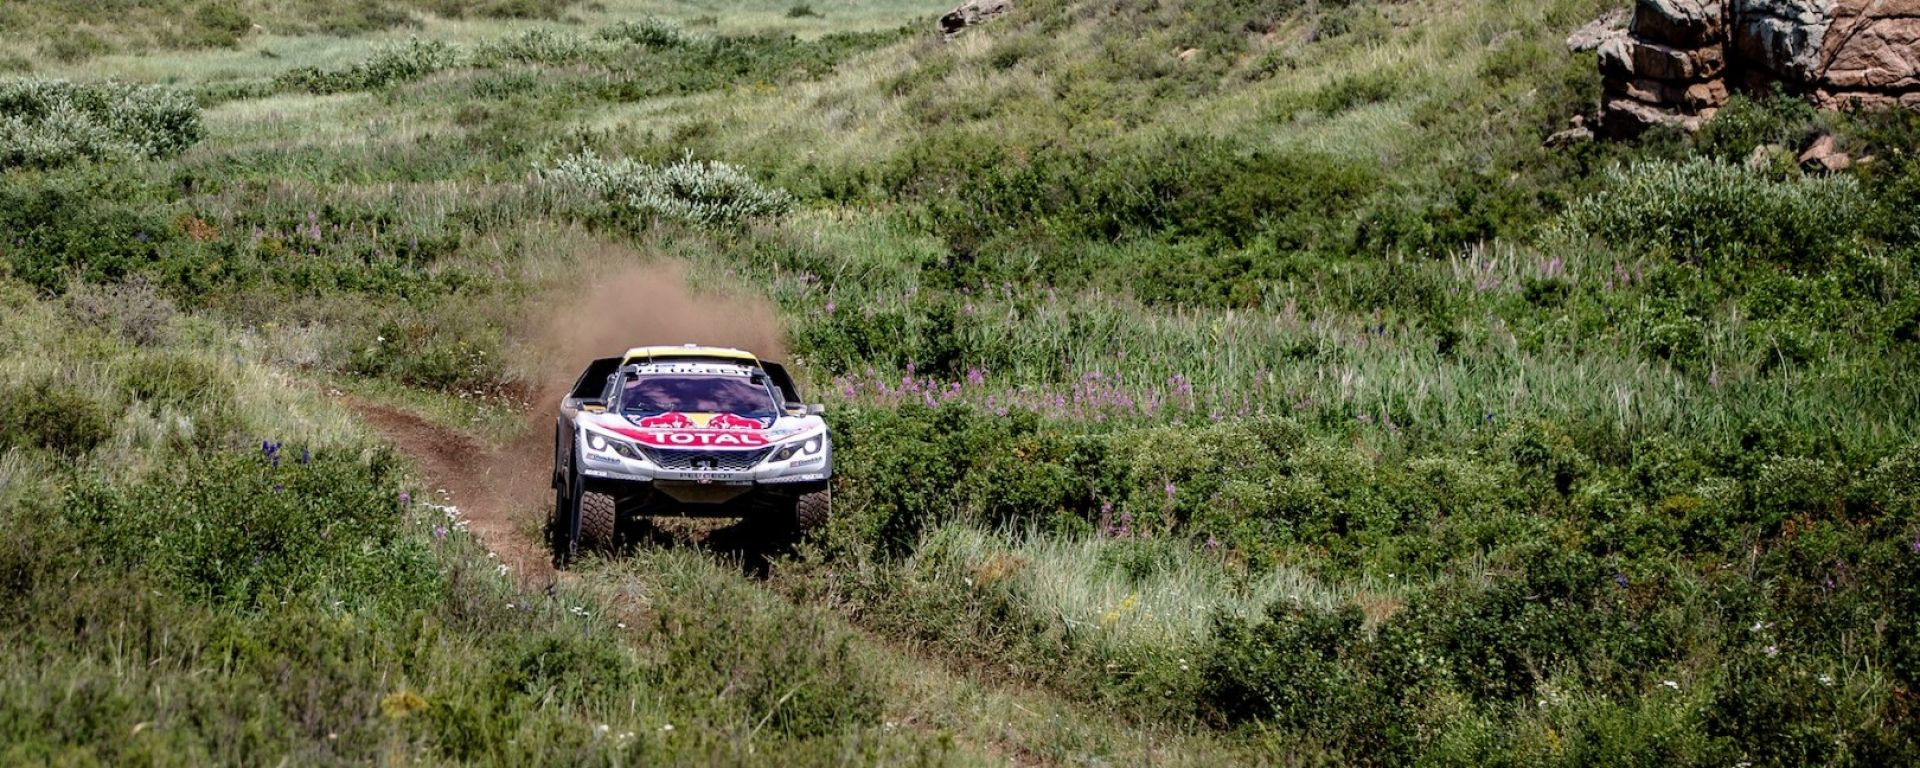 Silk Way Rally 2017 - Peugeot Total Sport